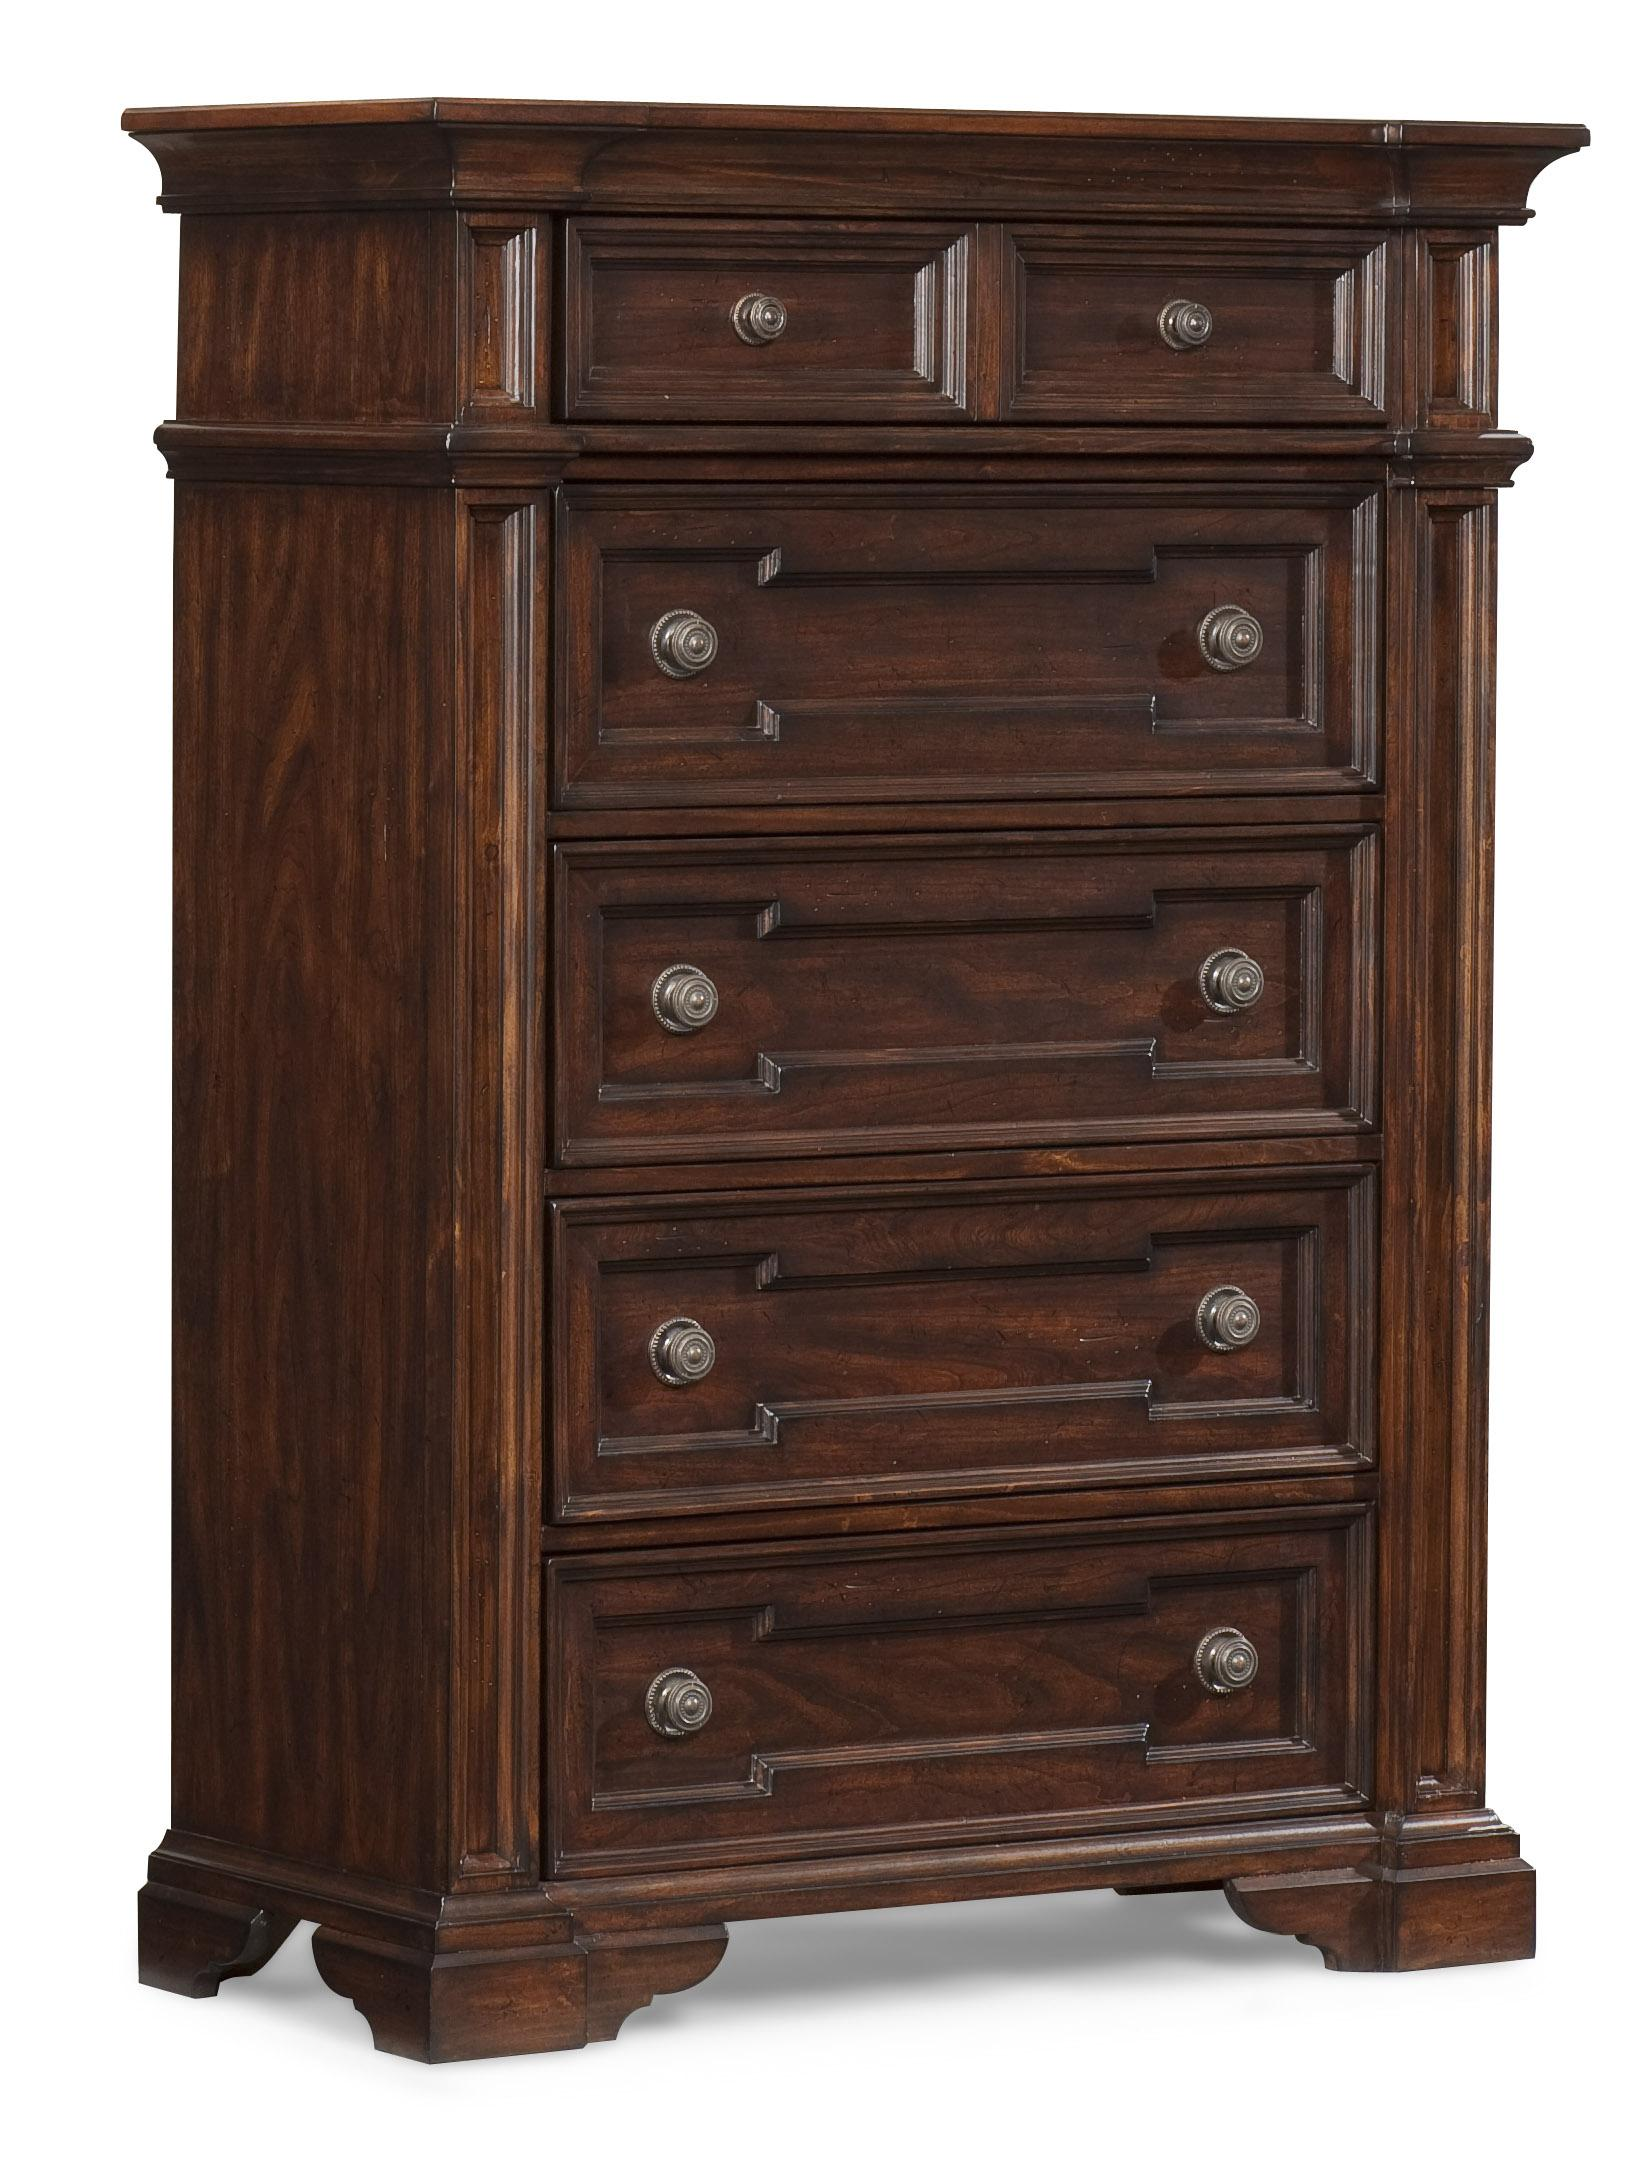 Belfort Basics Chesterbrook Drawer Chest - Item Number: 872-681 CHEST